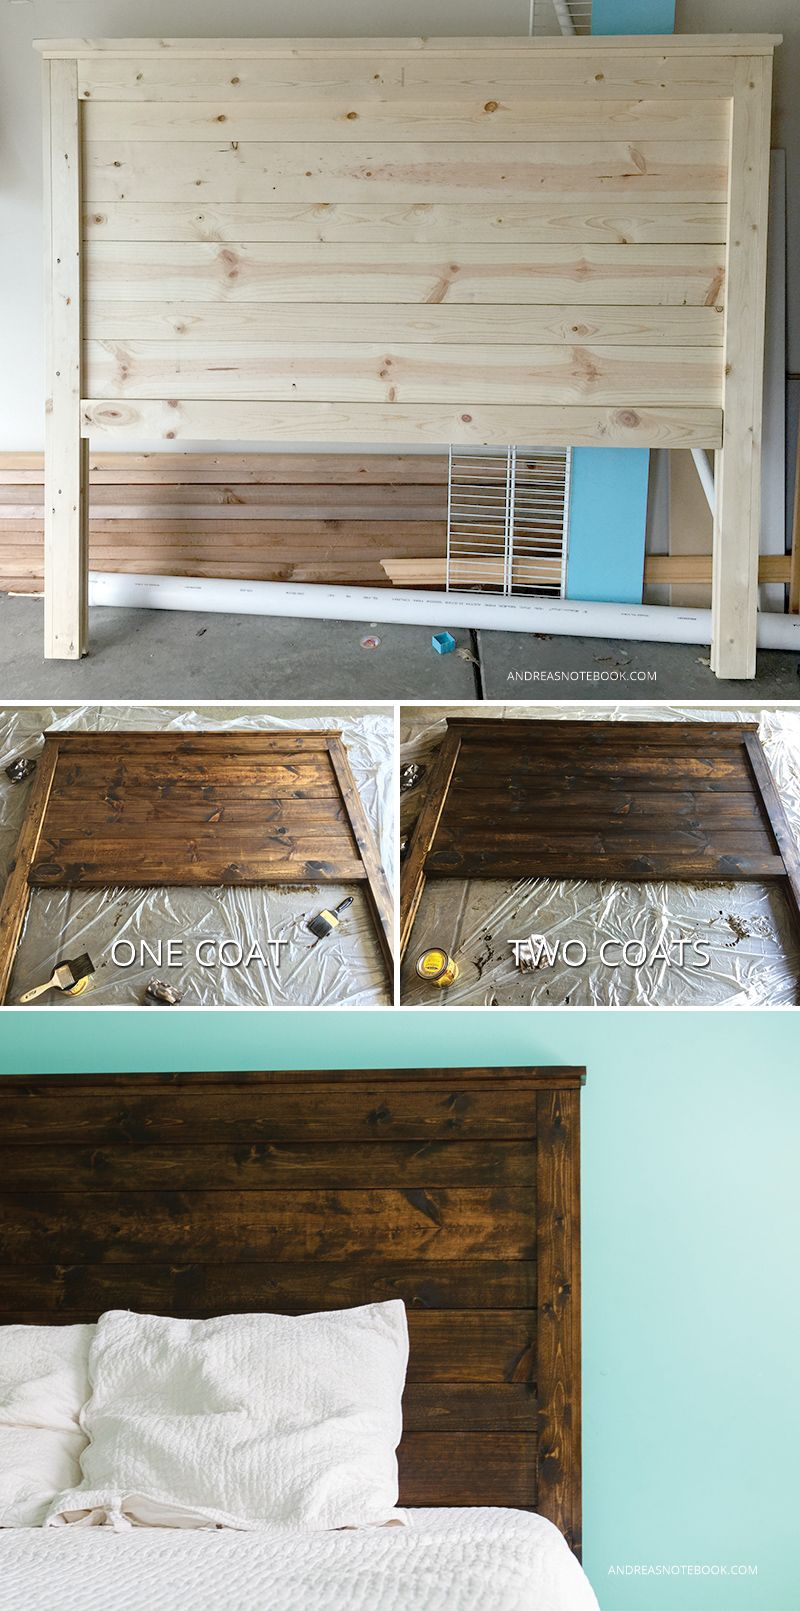 Bedroom Rustic Headboard Diy Home Decor Home Diy